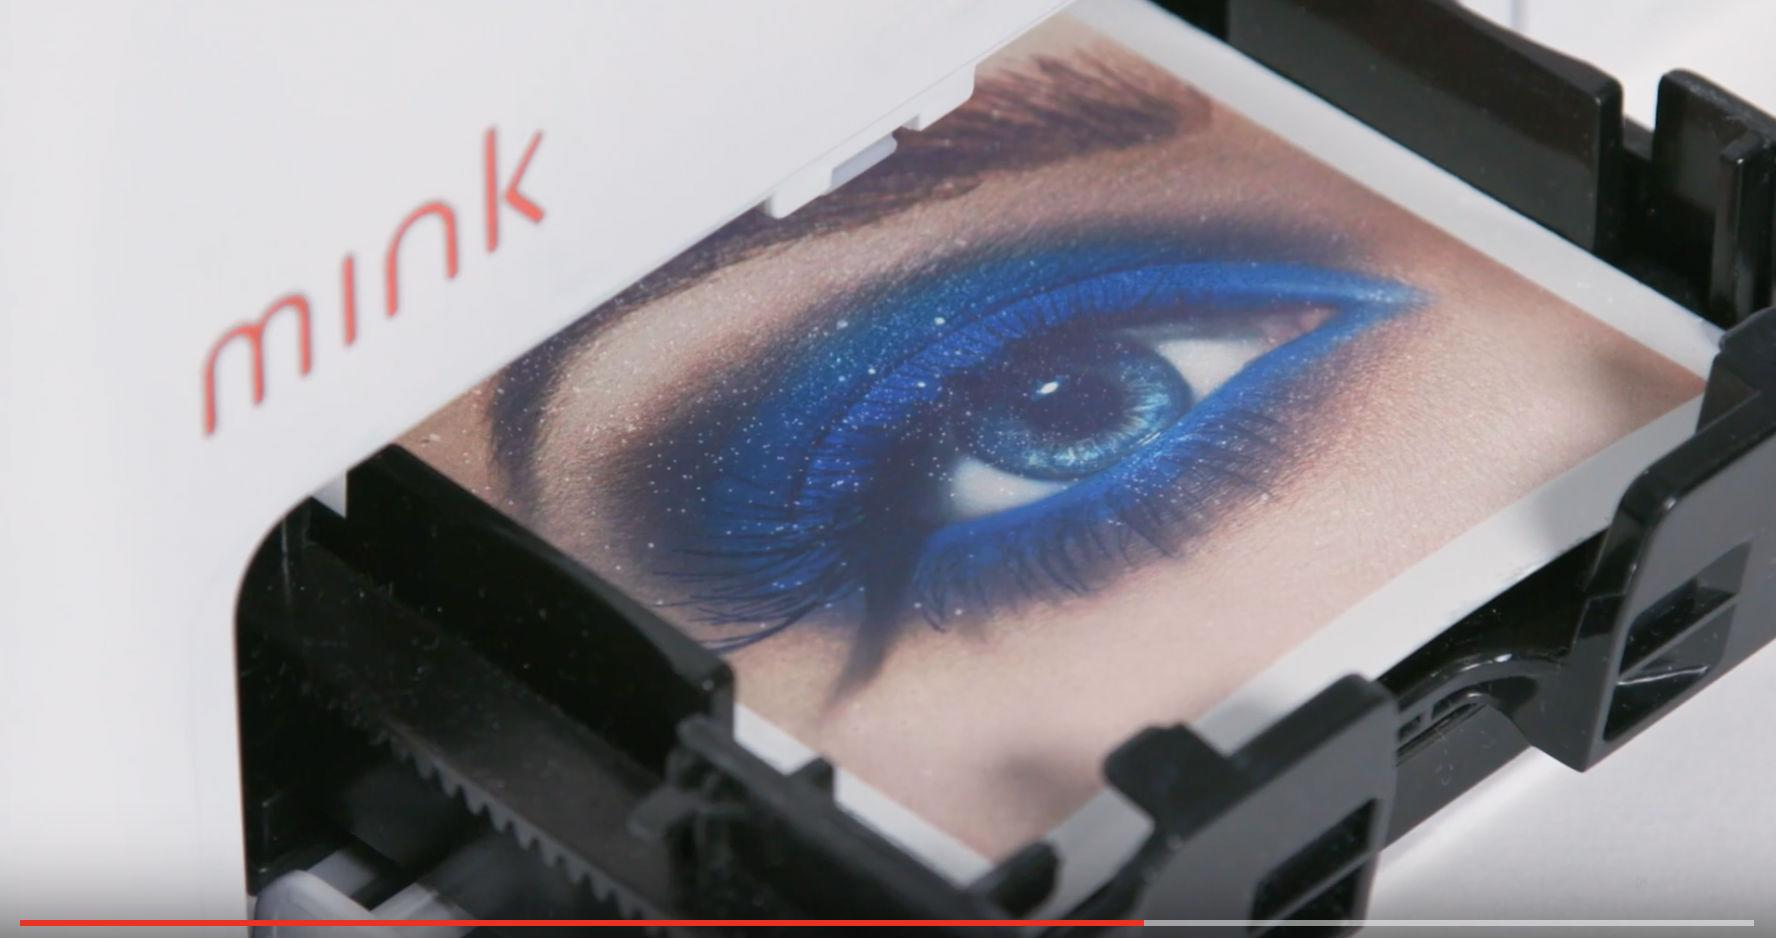 Introducing Mink The 3d Printer That Lets You Print Makeup At Home